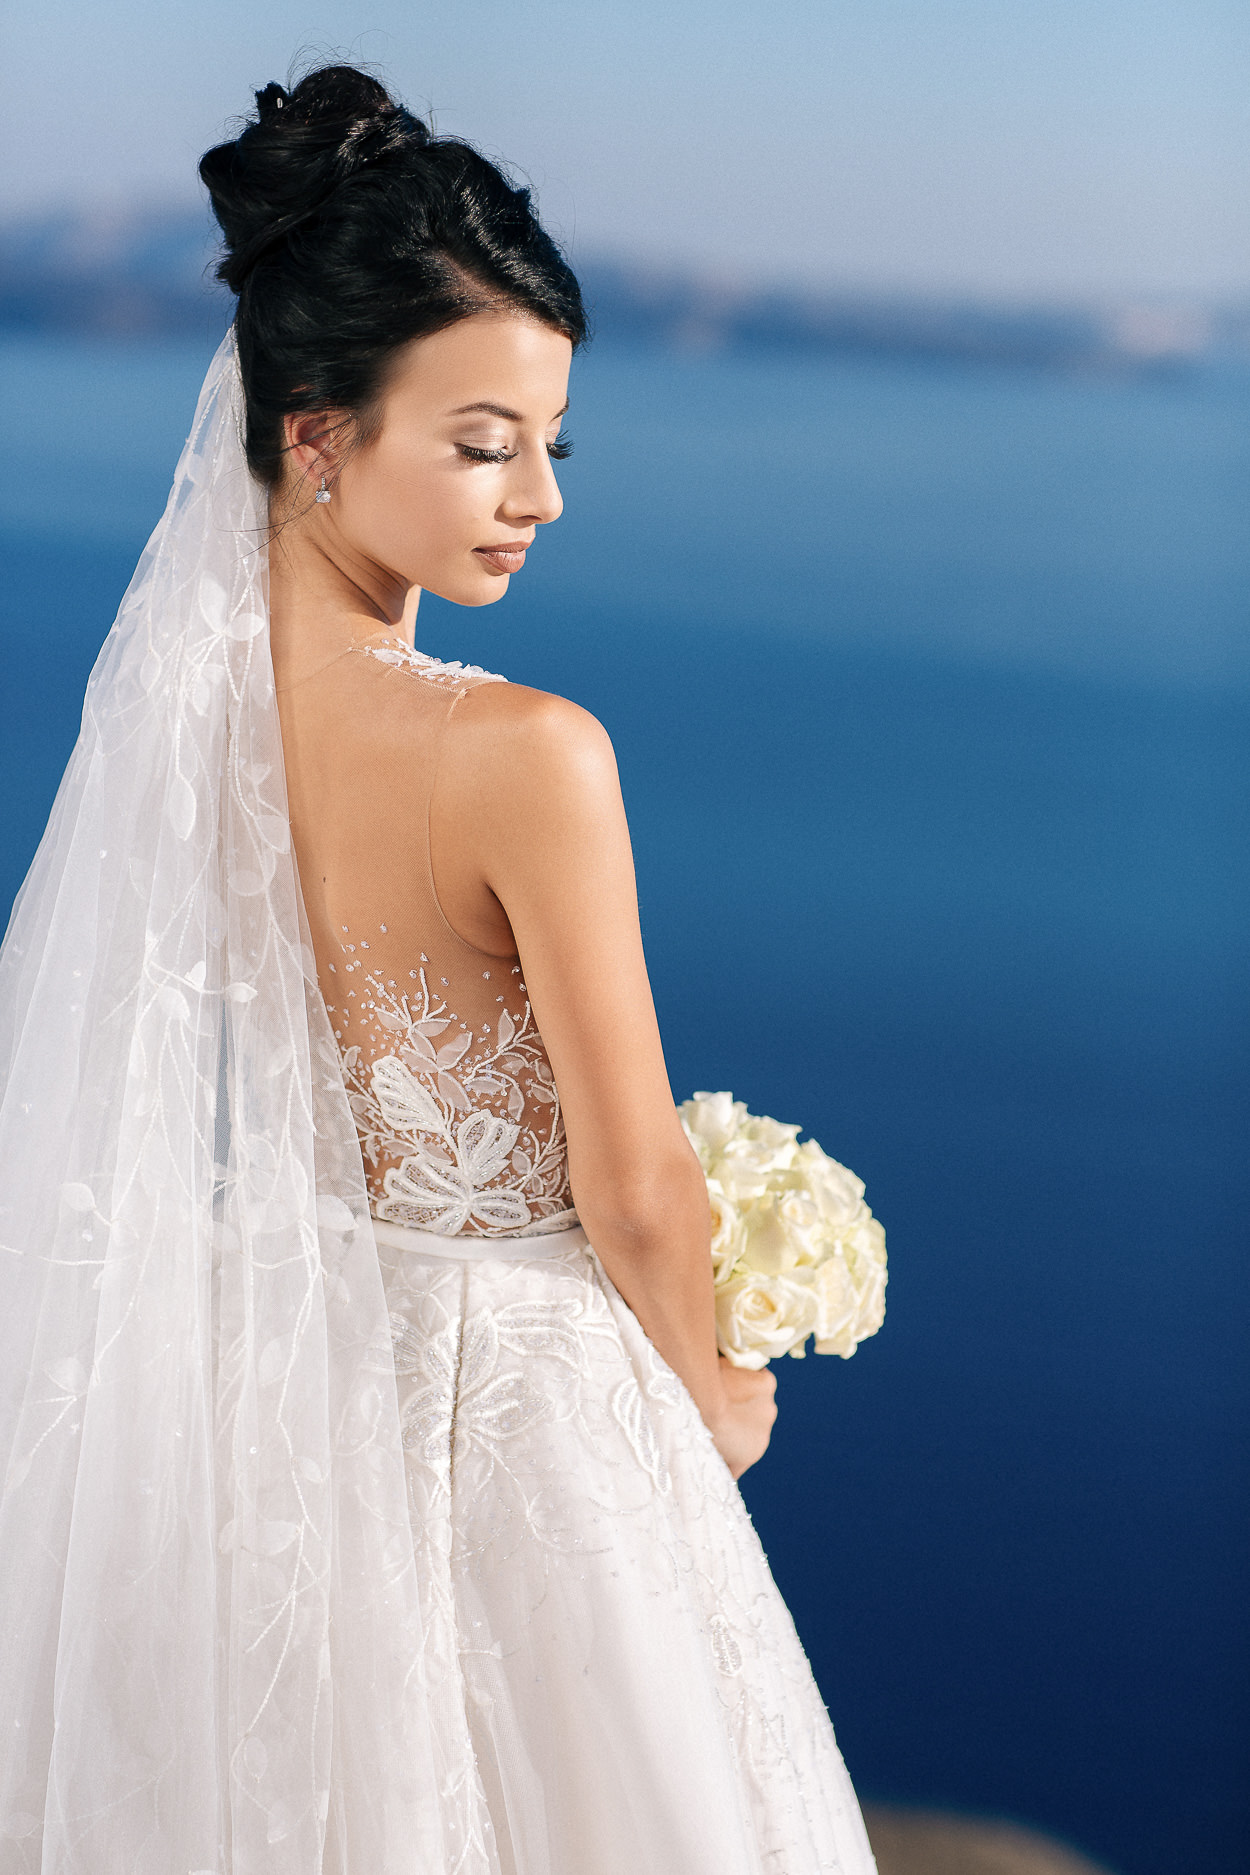 santorini wedding portraits